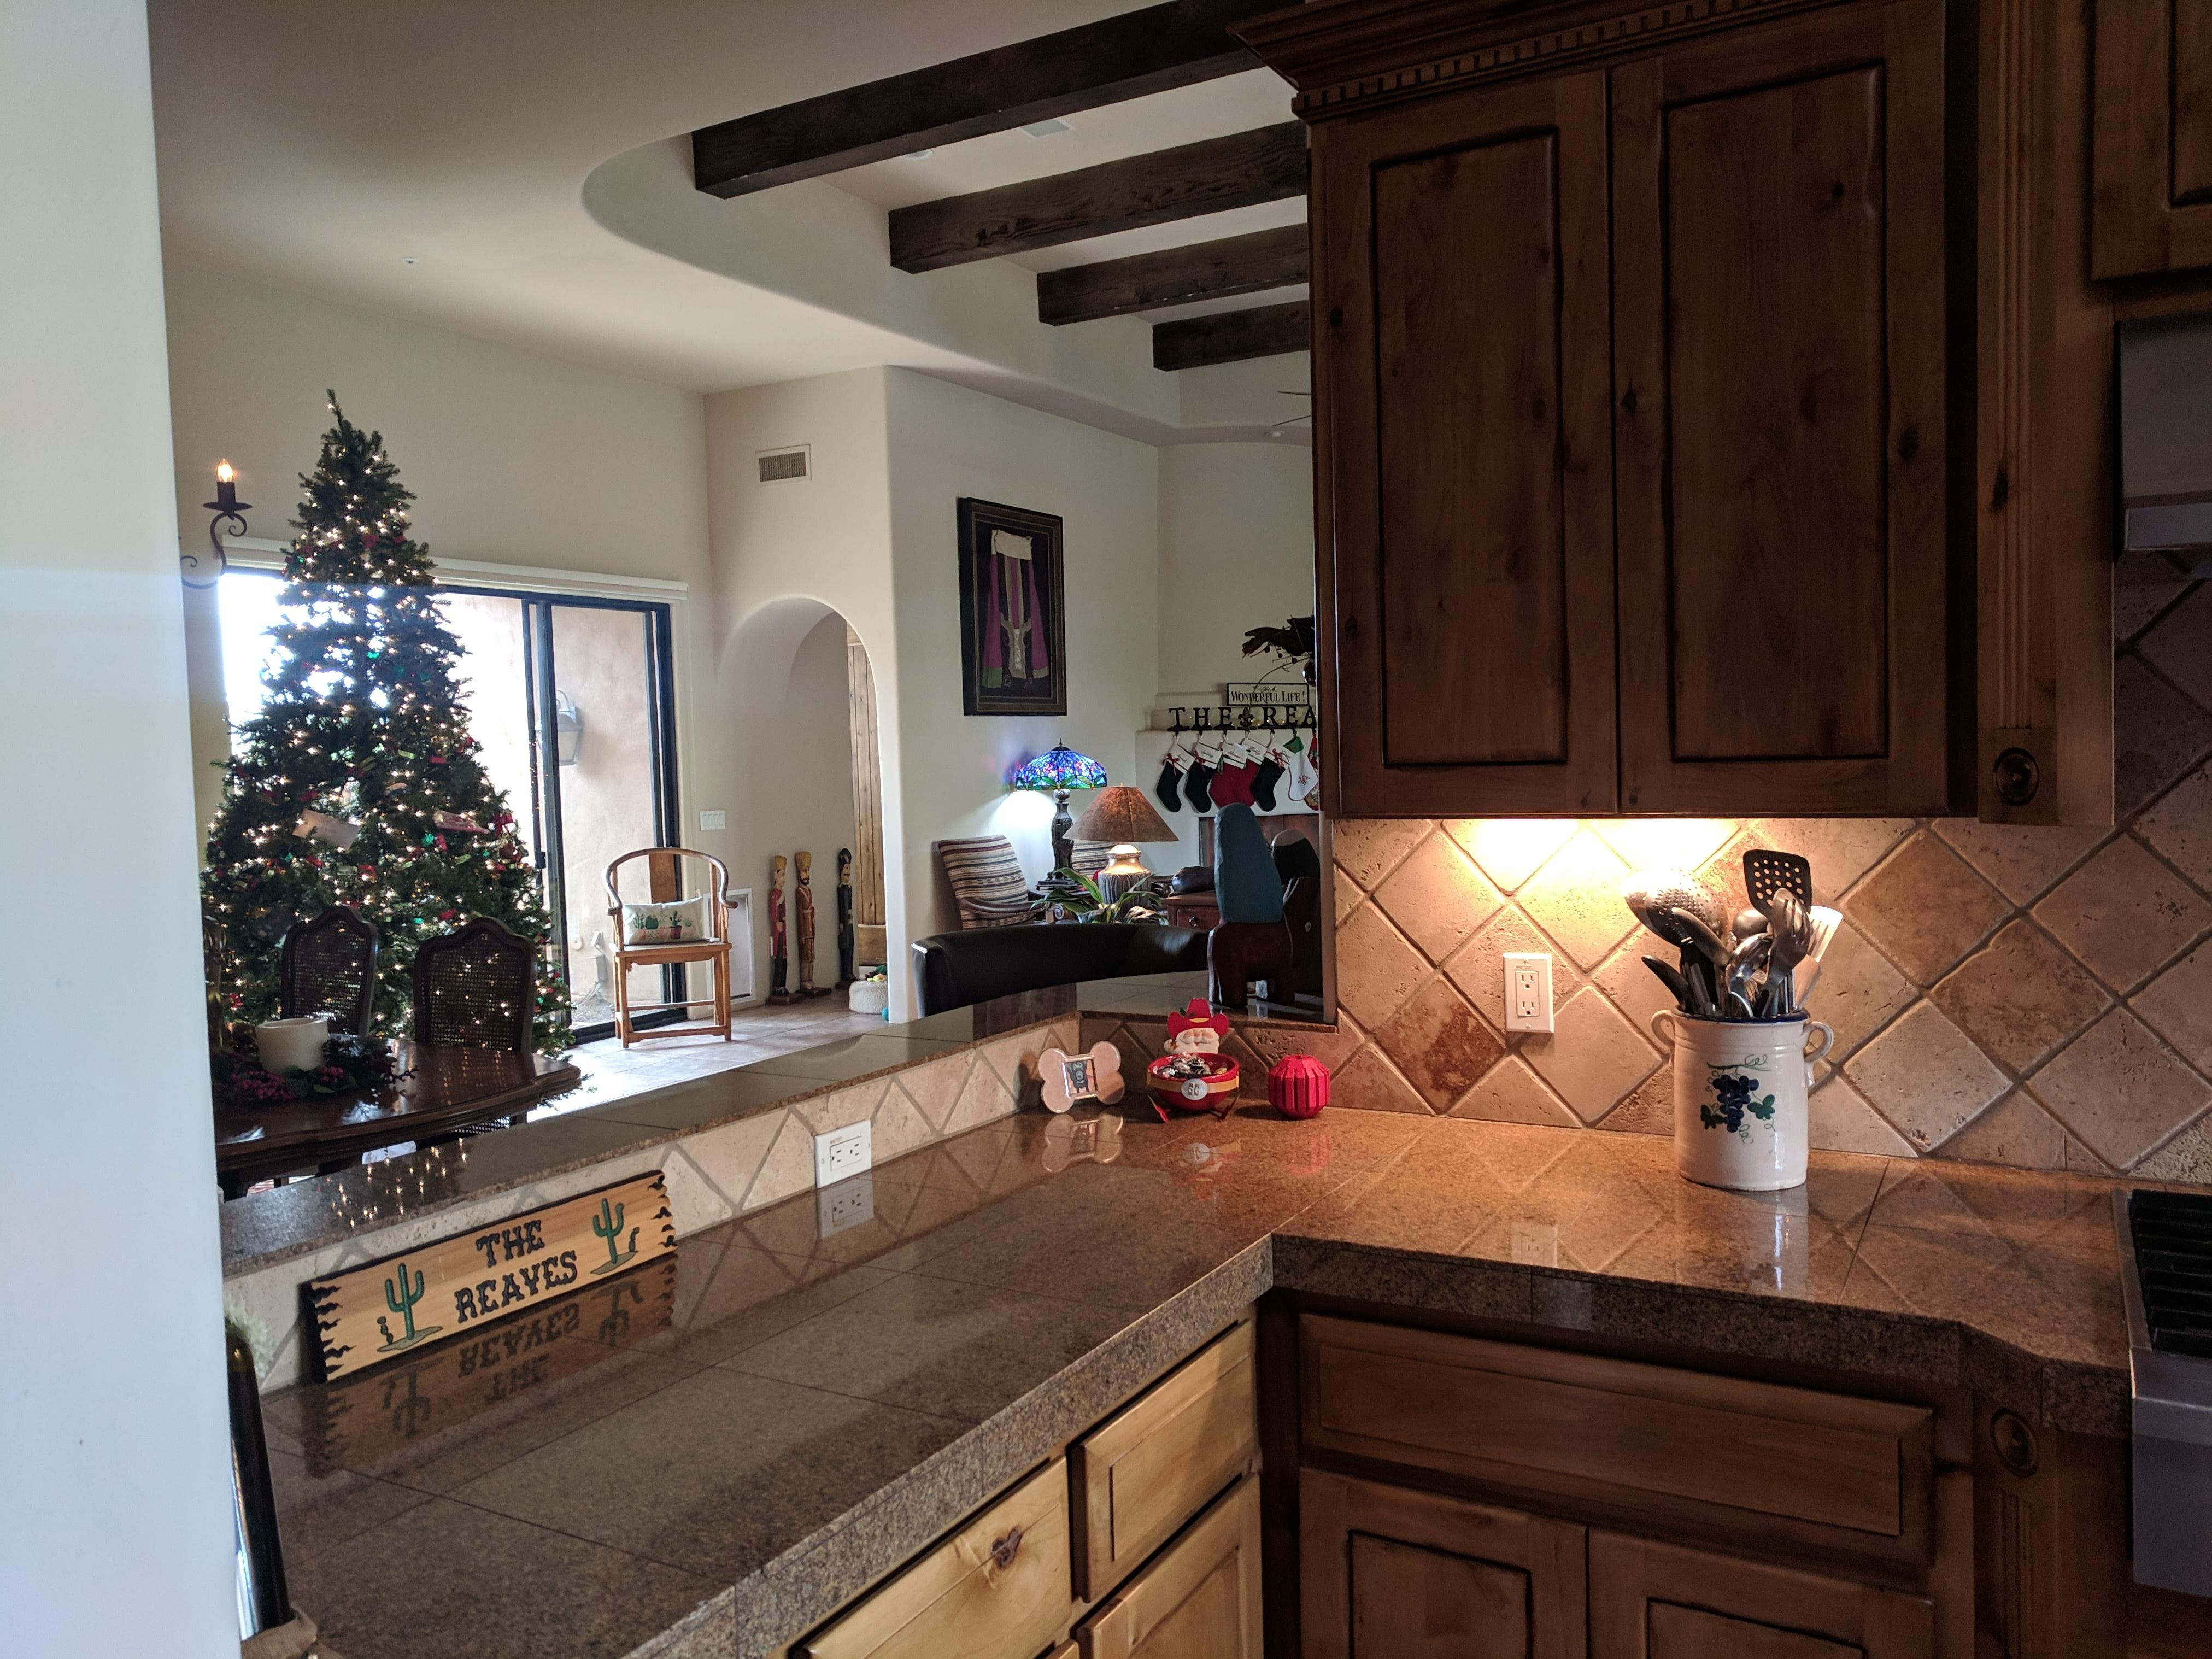 The kitchen area provides a peek-through to the living area, which is decorated for Christmas.